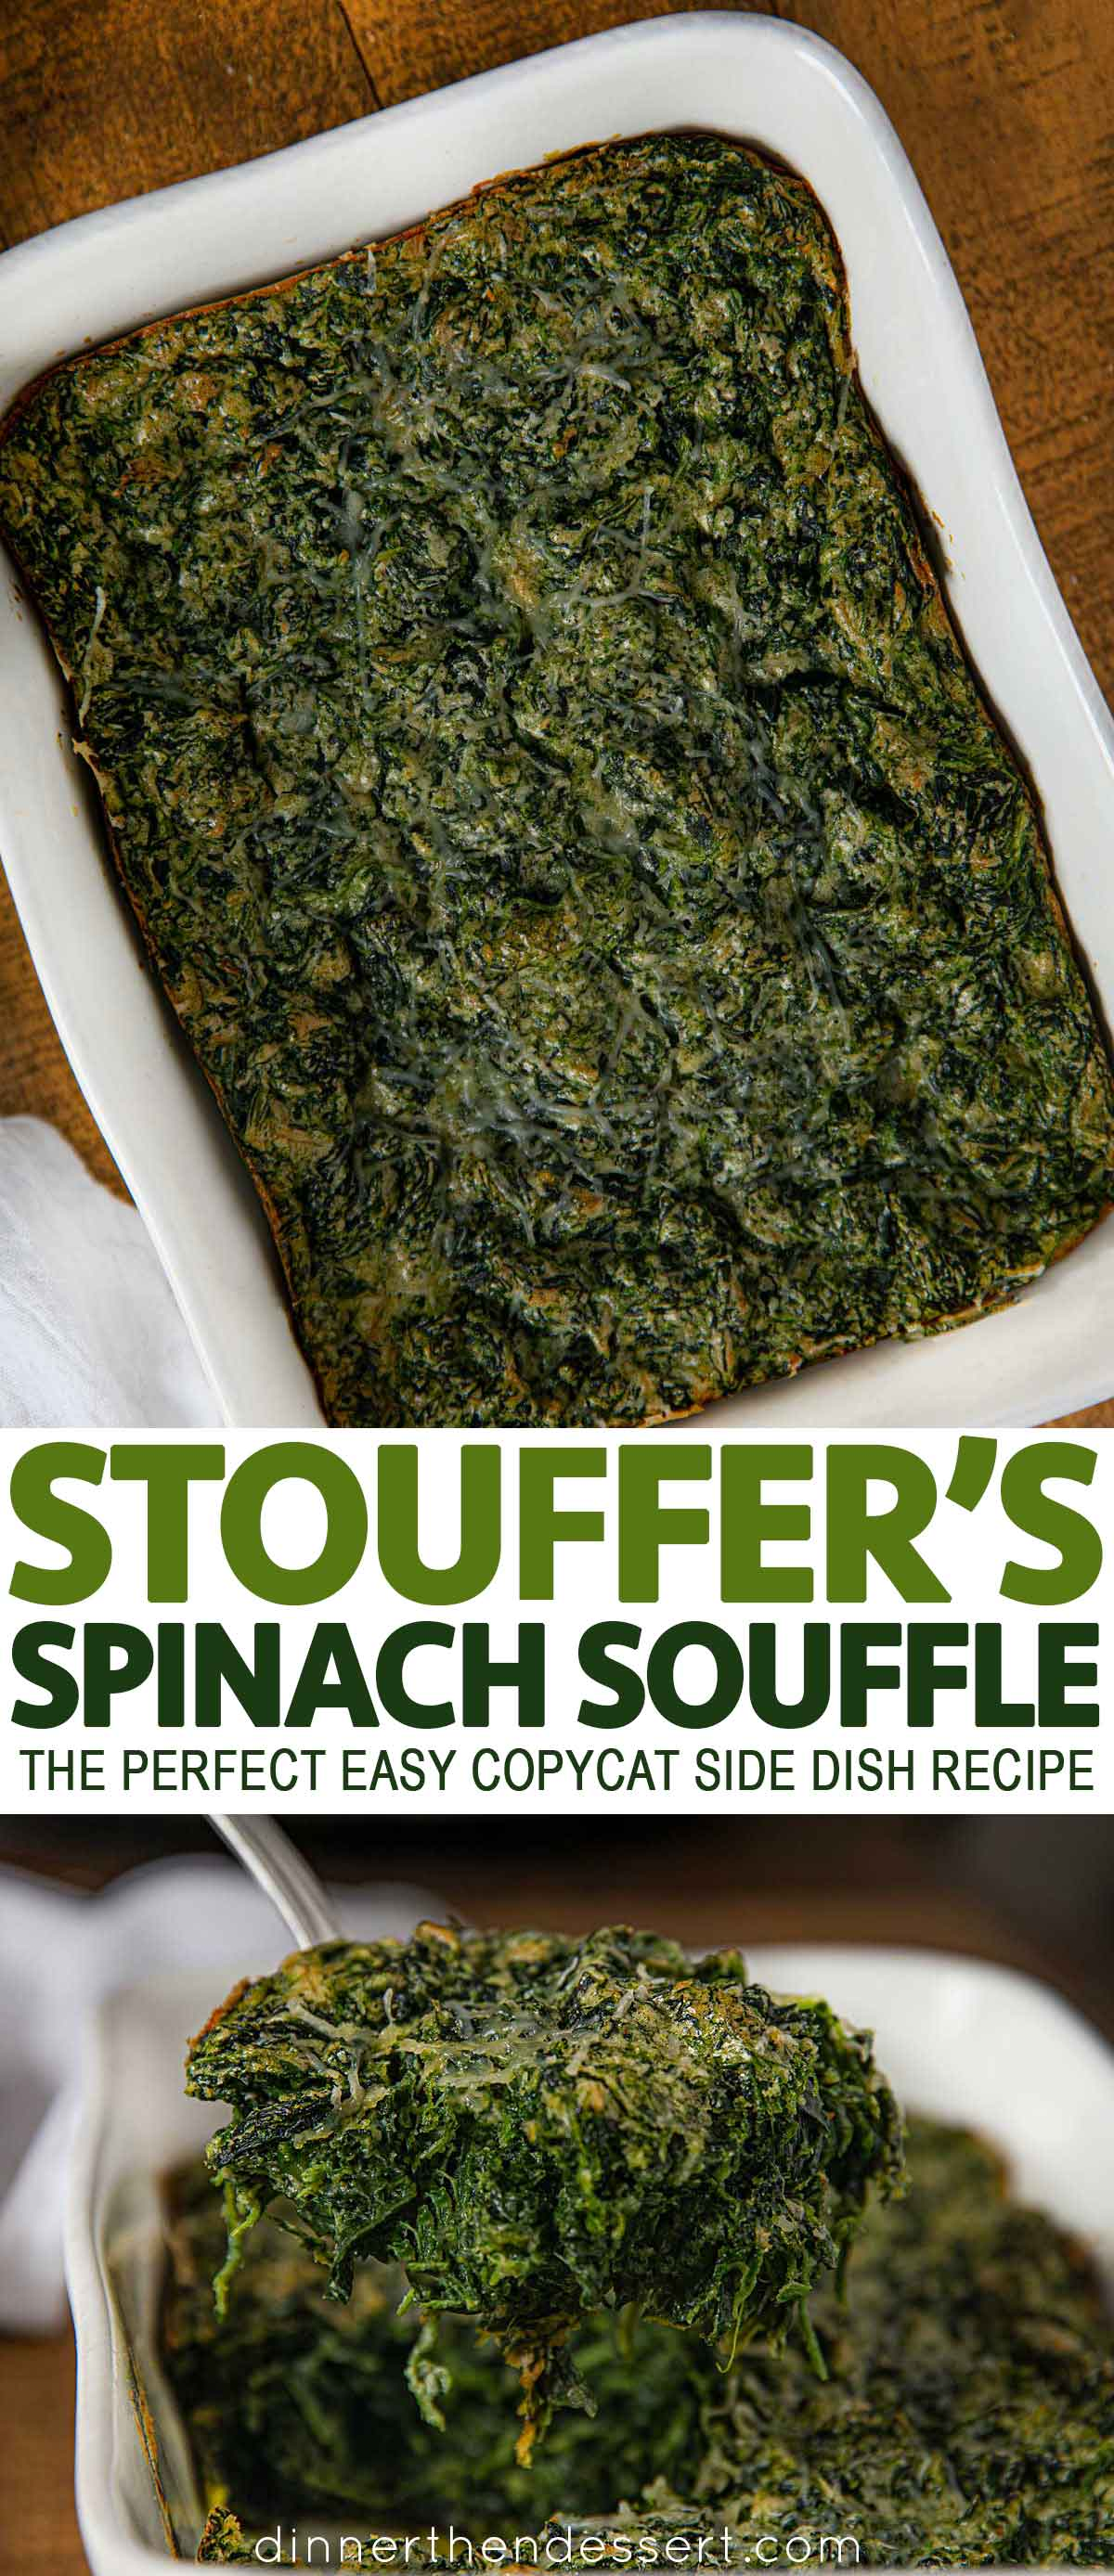 Collage of photos of Spinach Souffle from Stouffers